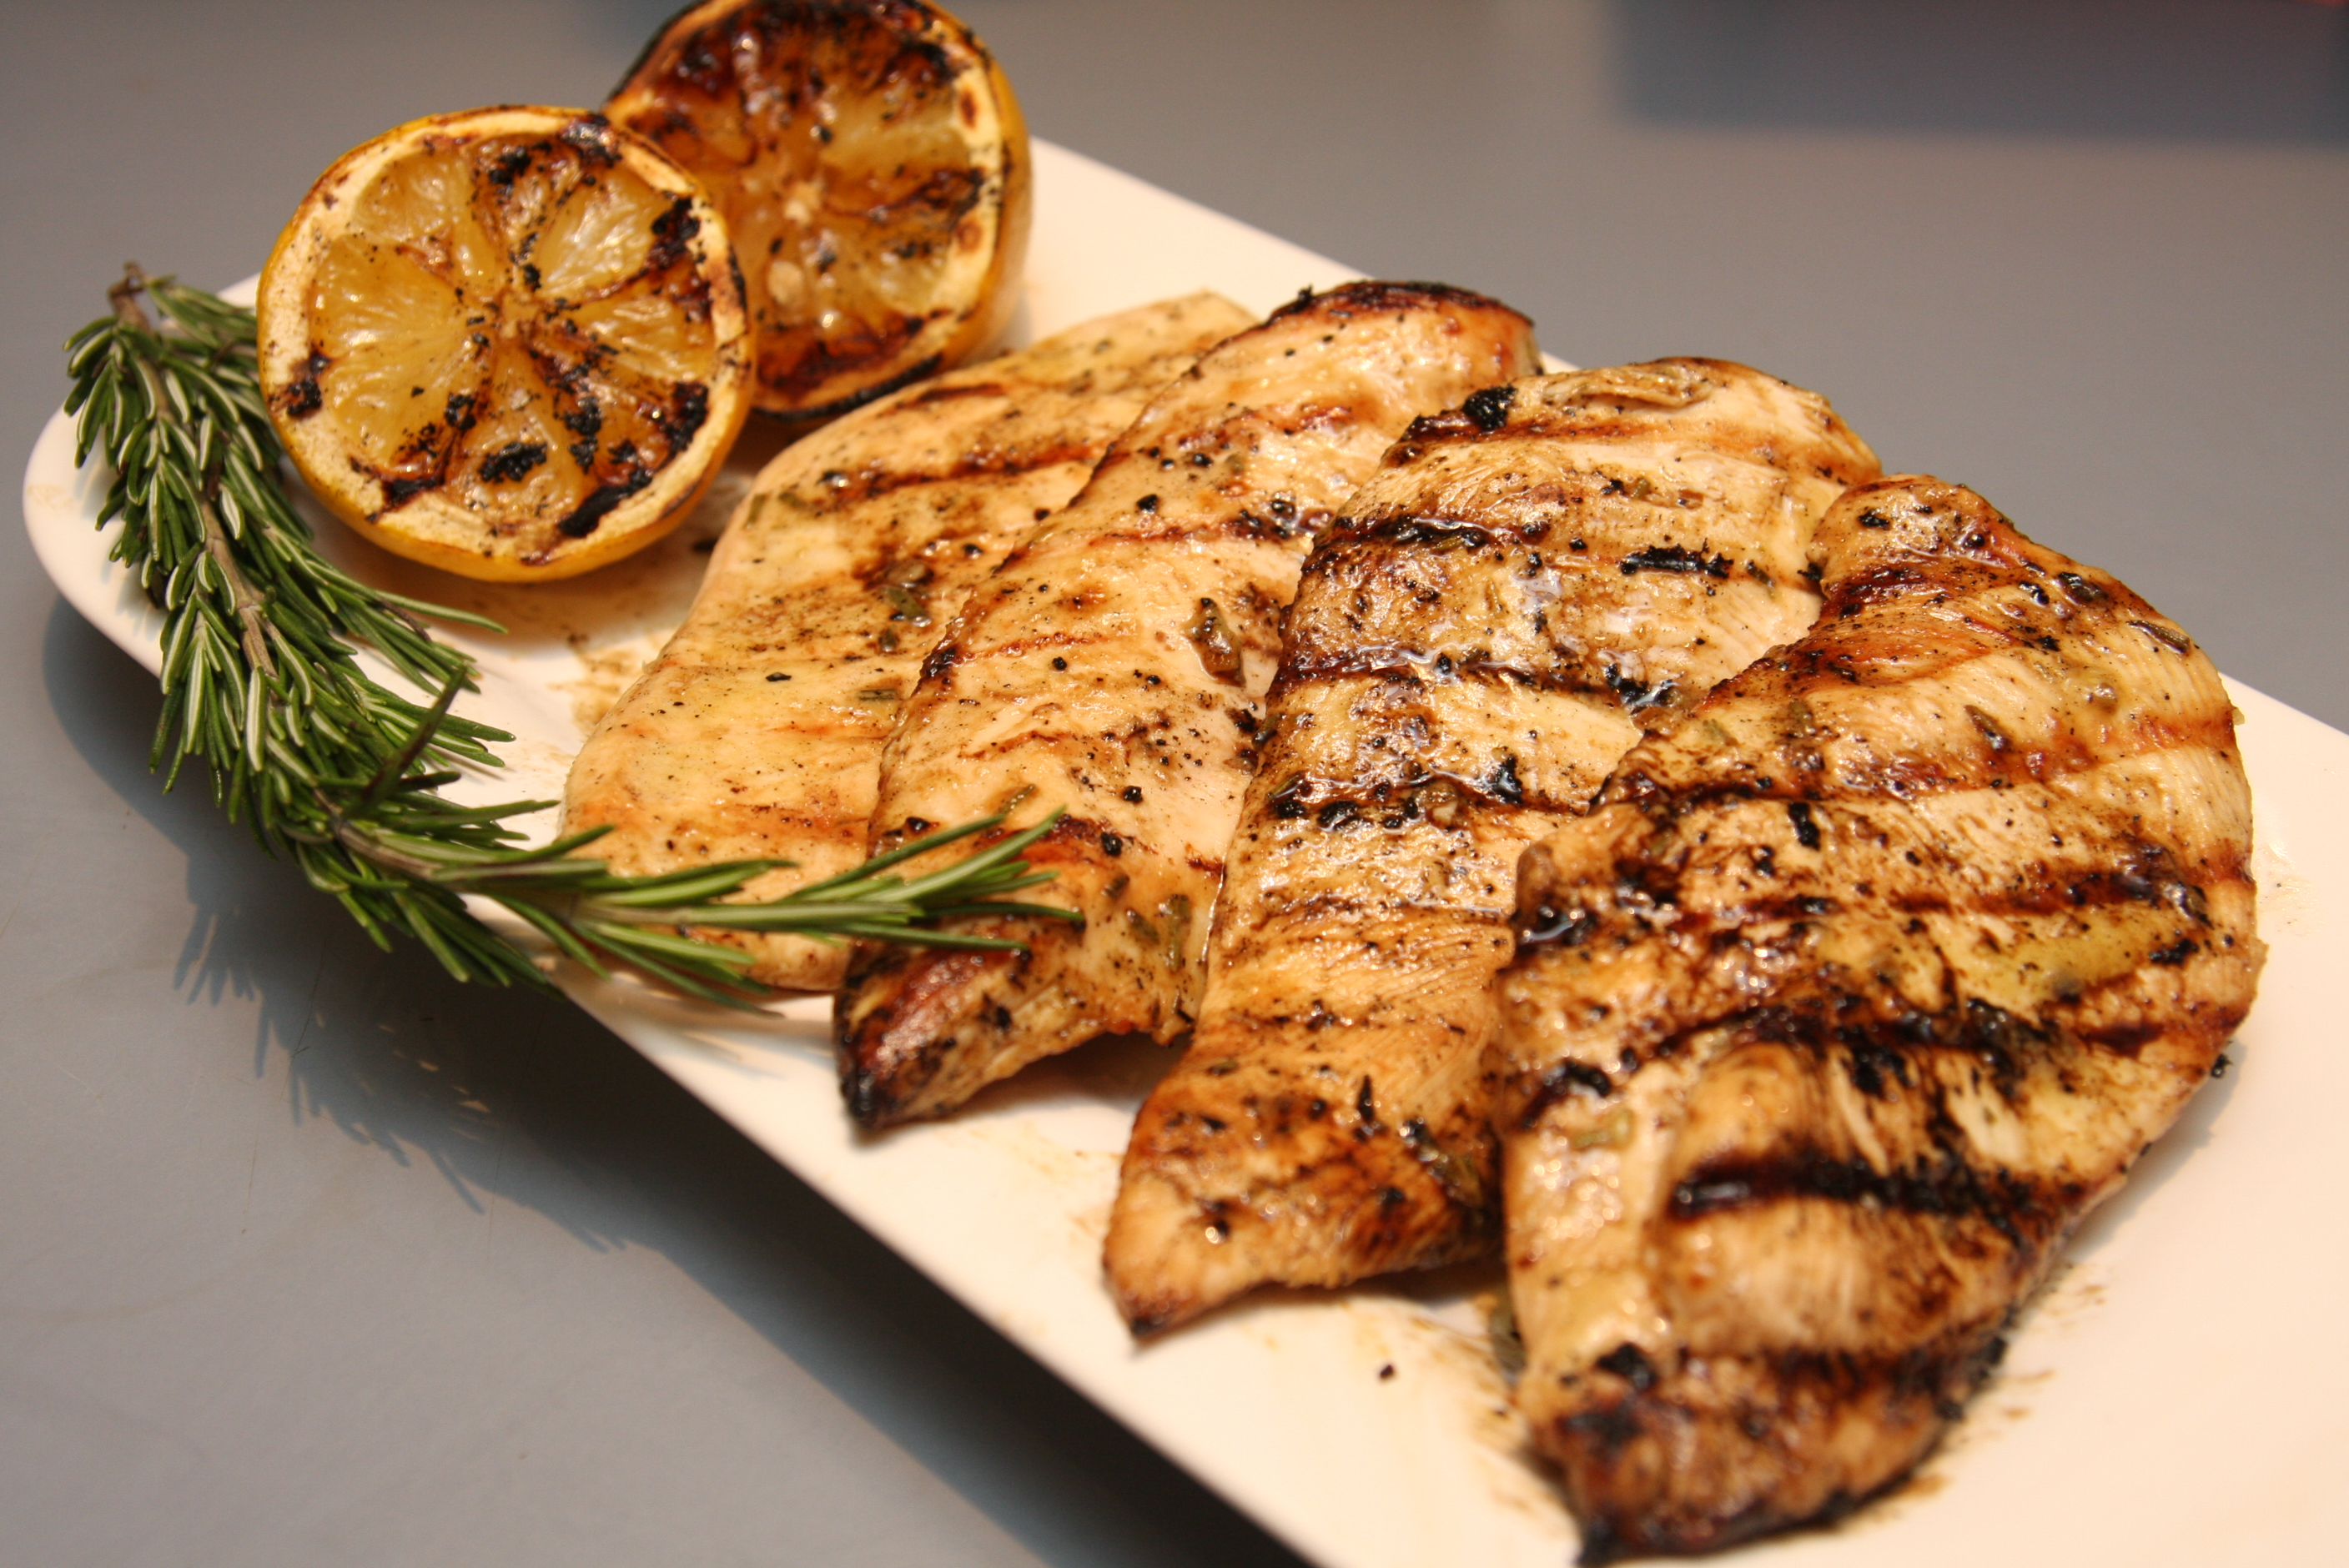 Boneless, skinless chicken breasts have become a grilling standard. But they are also one of the easiest foods to overcook. The key to perfect boneless, skinless chicken breasts is a quick sear followed by indirect grilling.